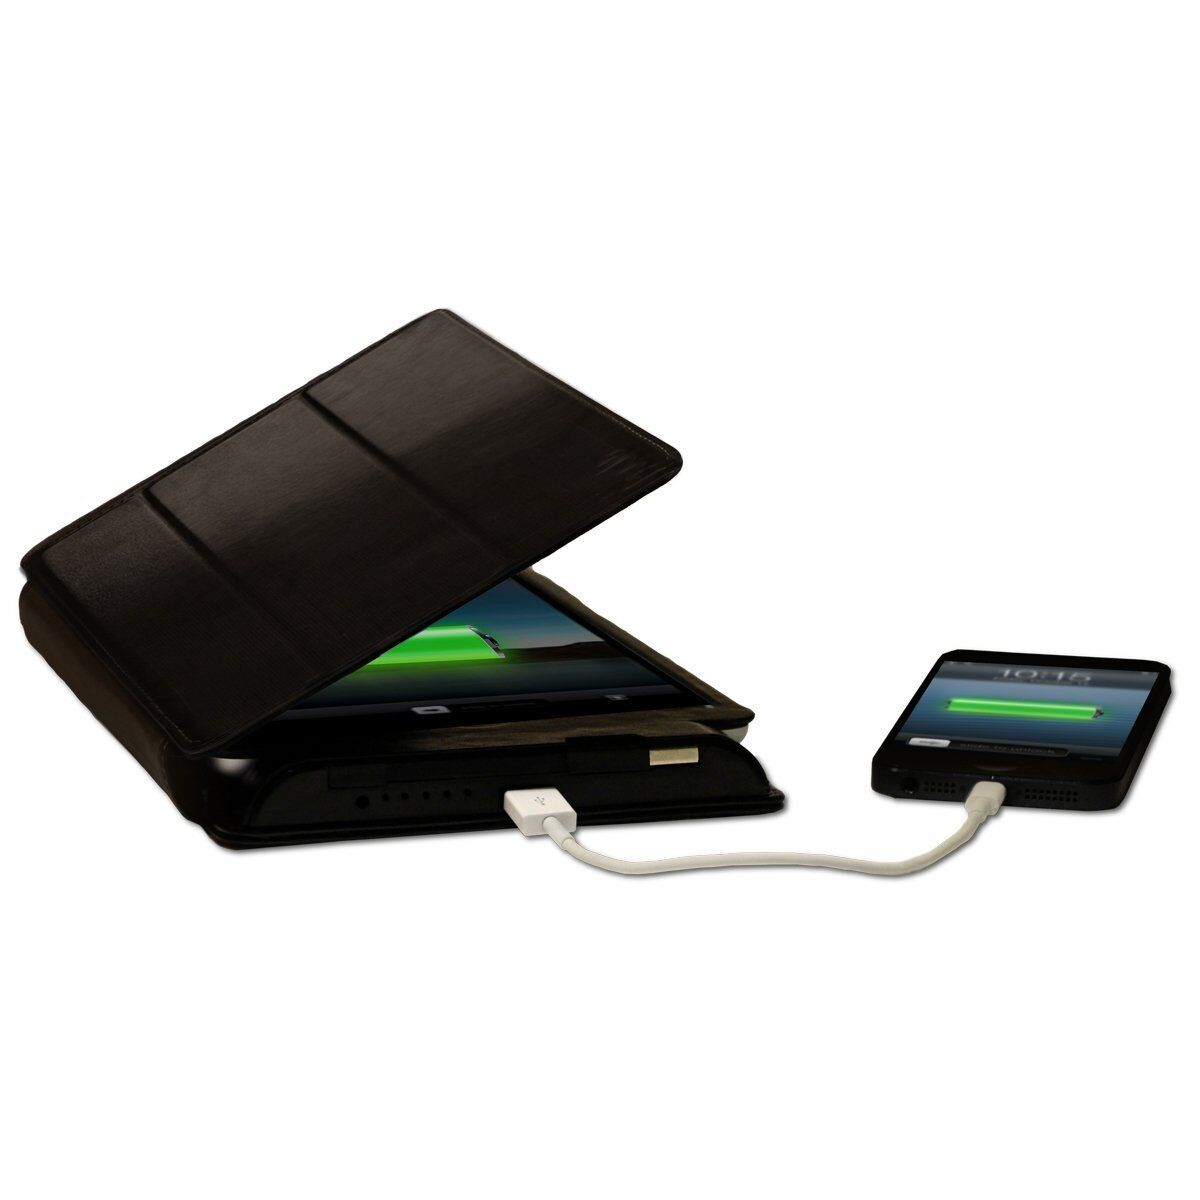 lot x5 Solar Power bank leather case Kudo for iPad Air 1 2 B